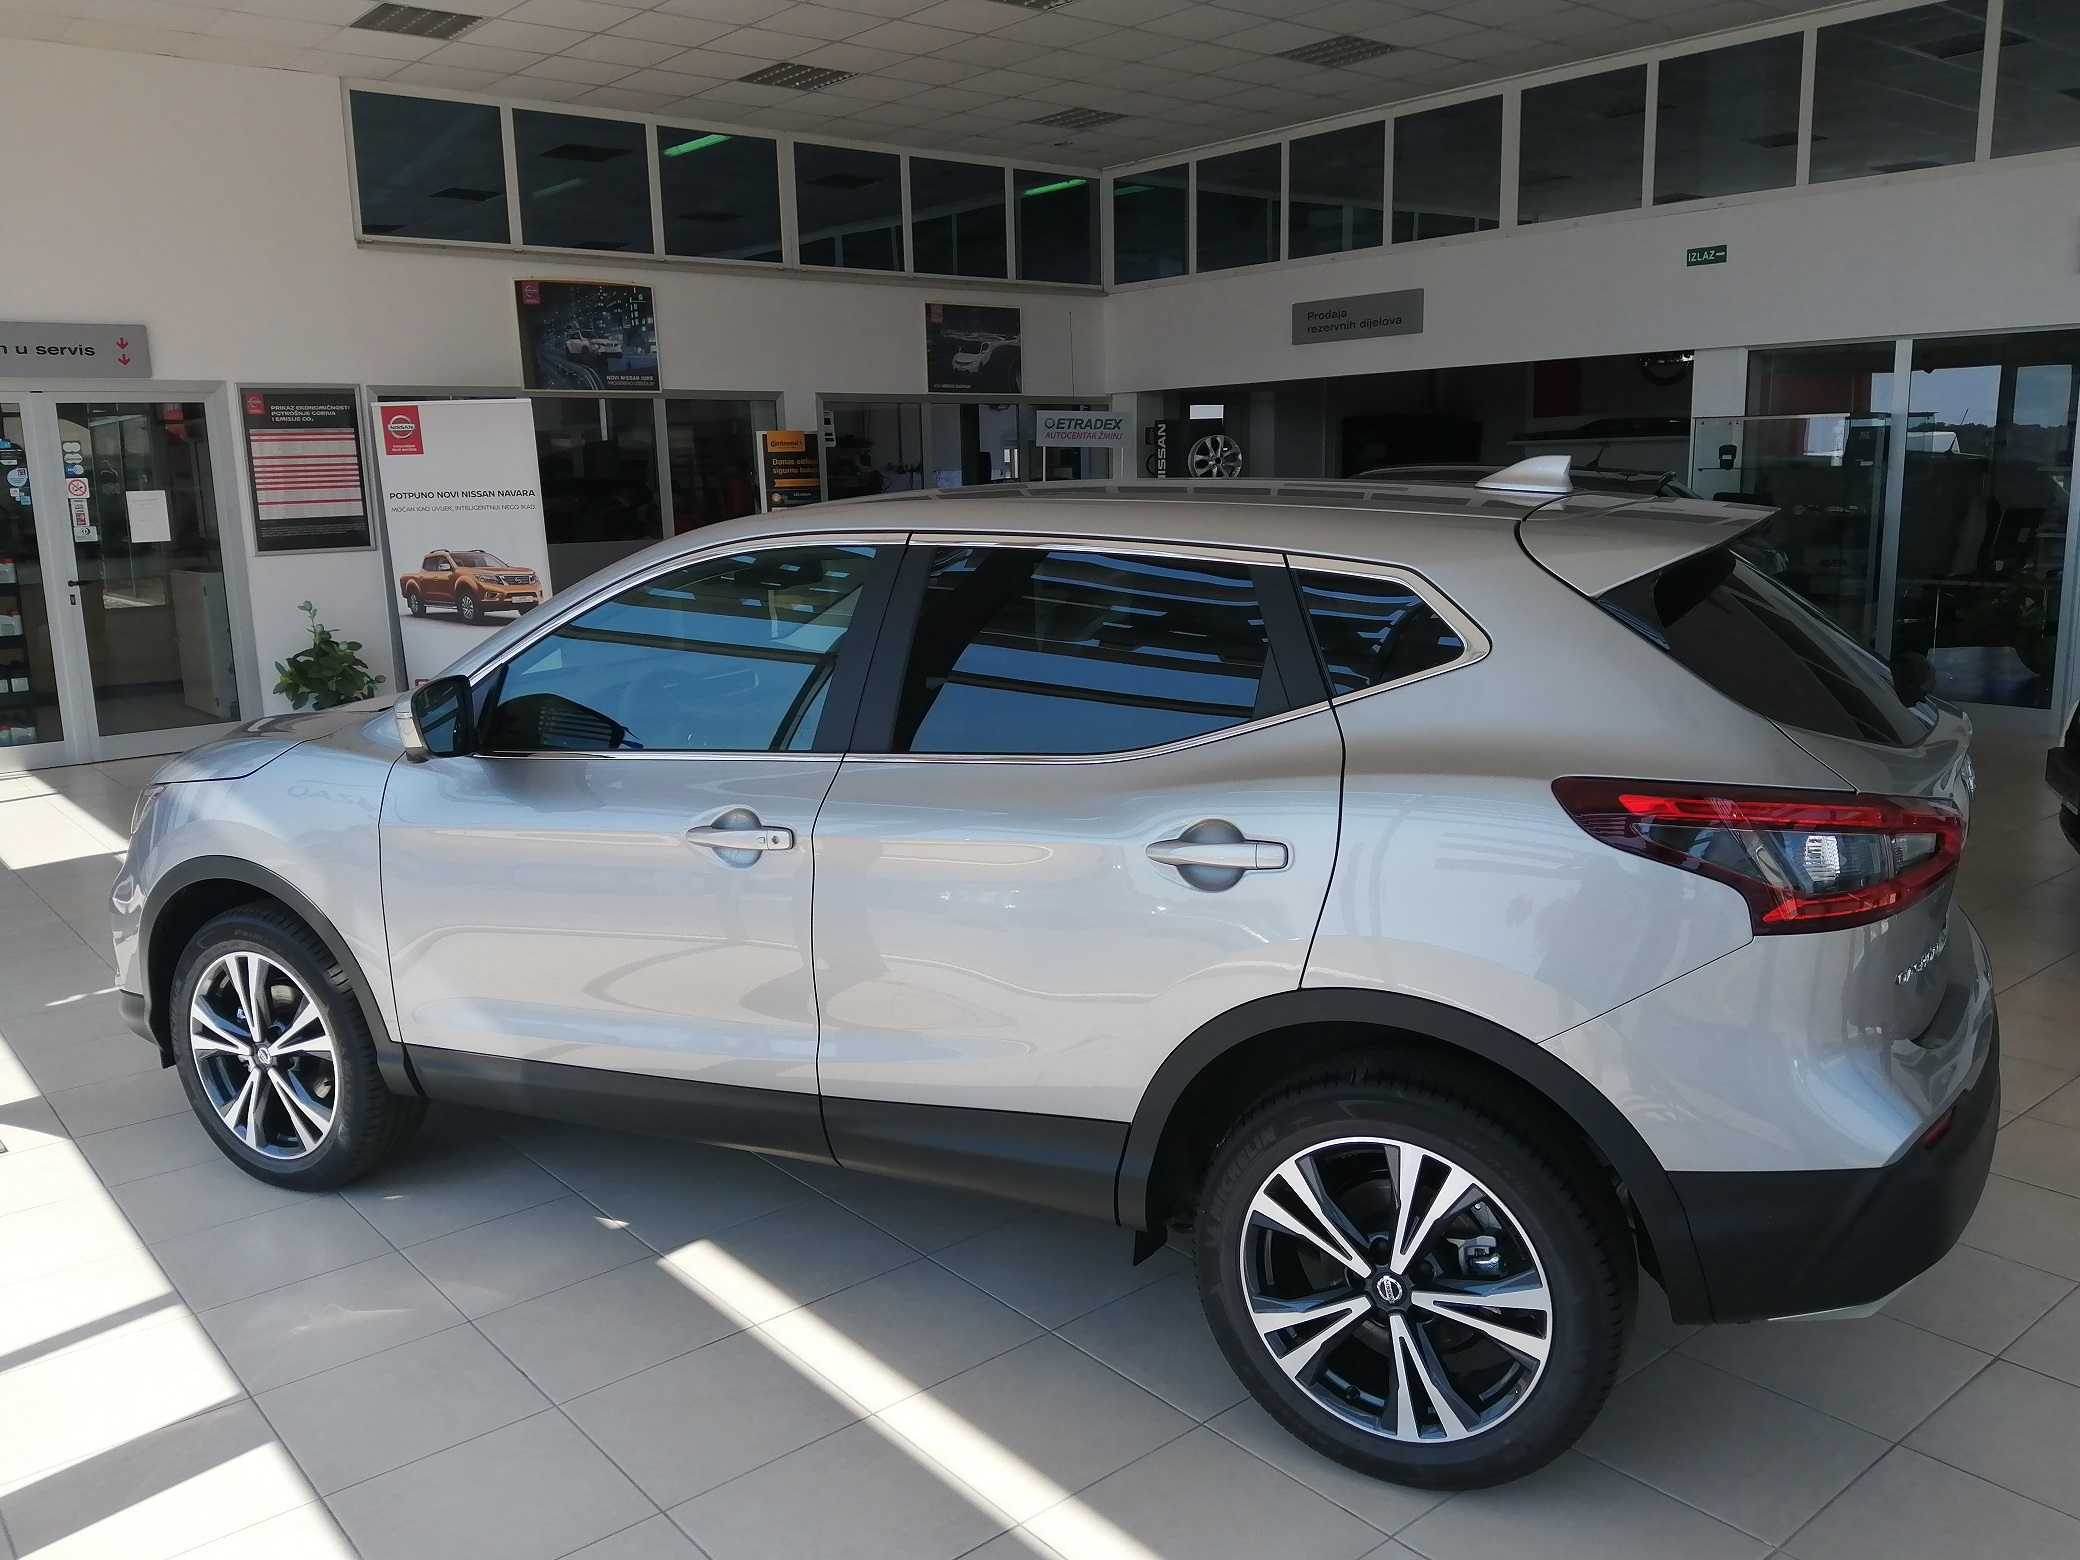 NOVI Nissan Qashqai 1,3 DIG   160 KS  N-CONNECTA + LED